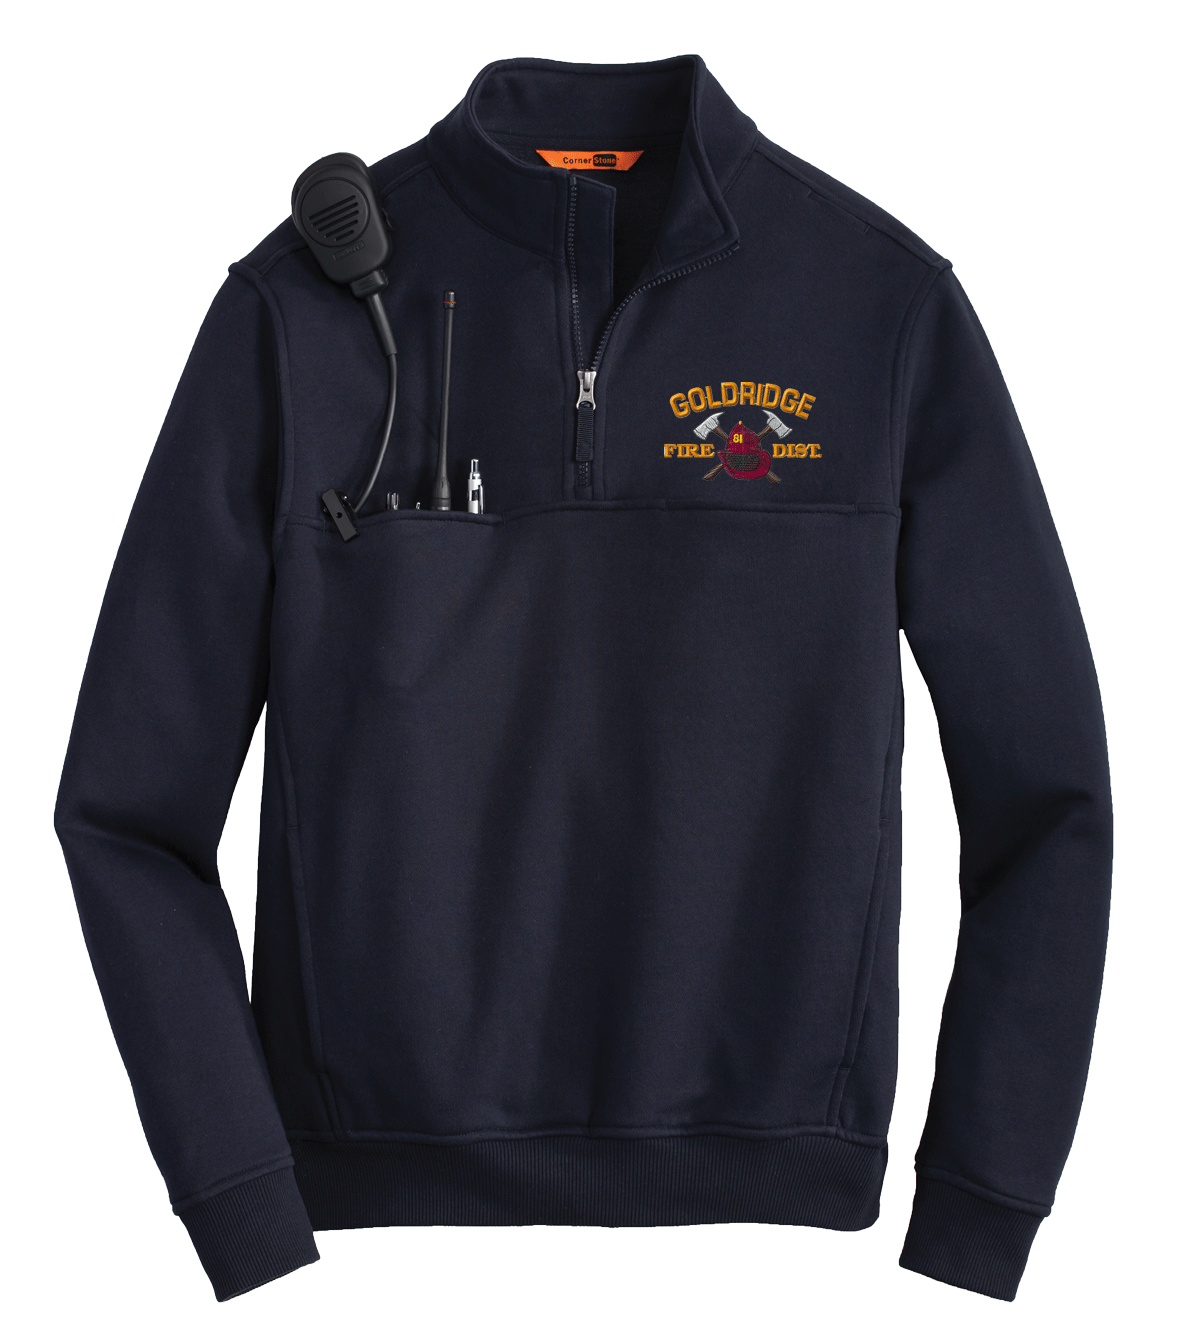 Gold Ridge Fire 1/4 zip Workshirt